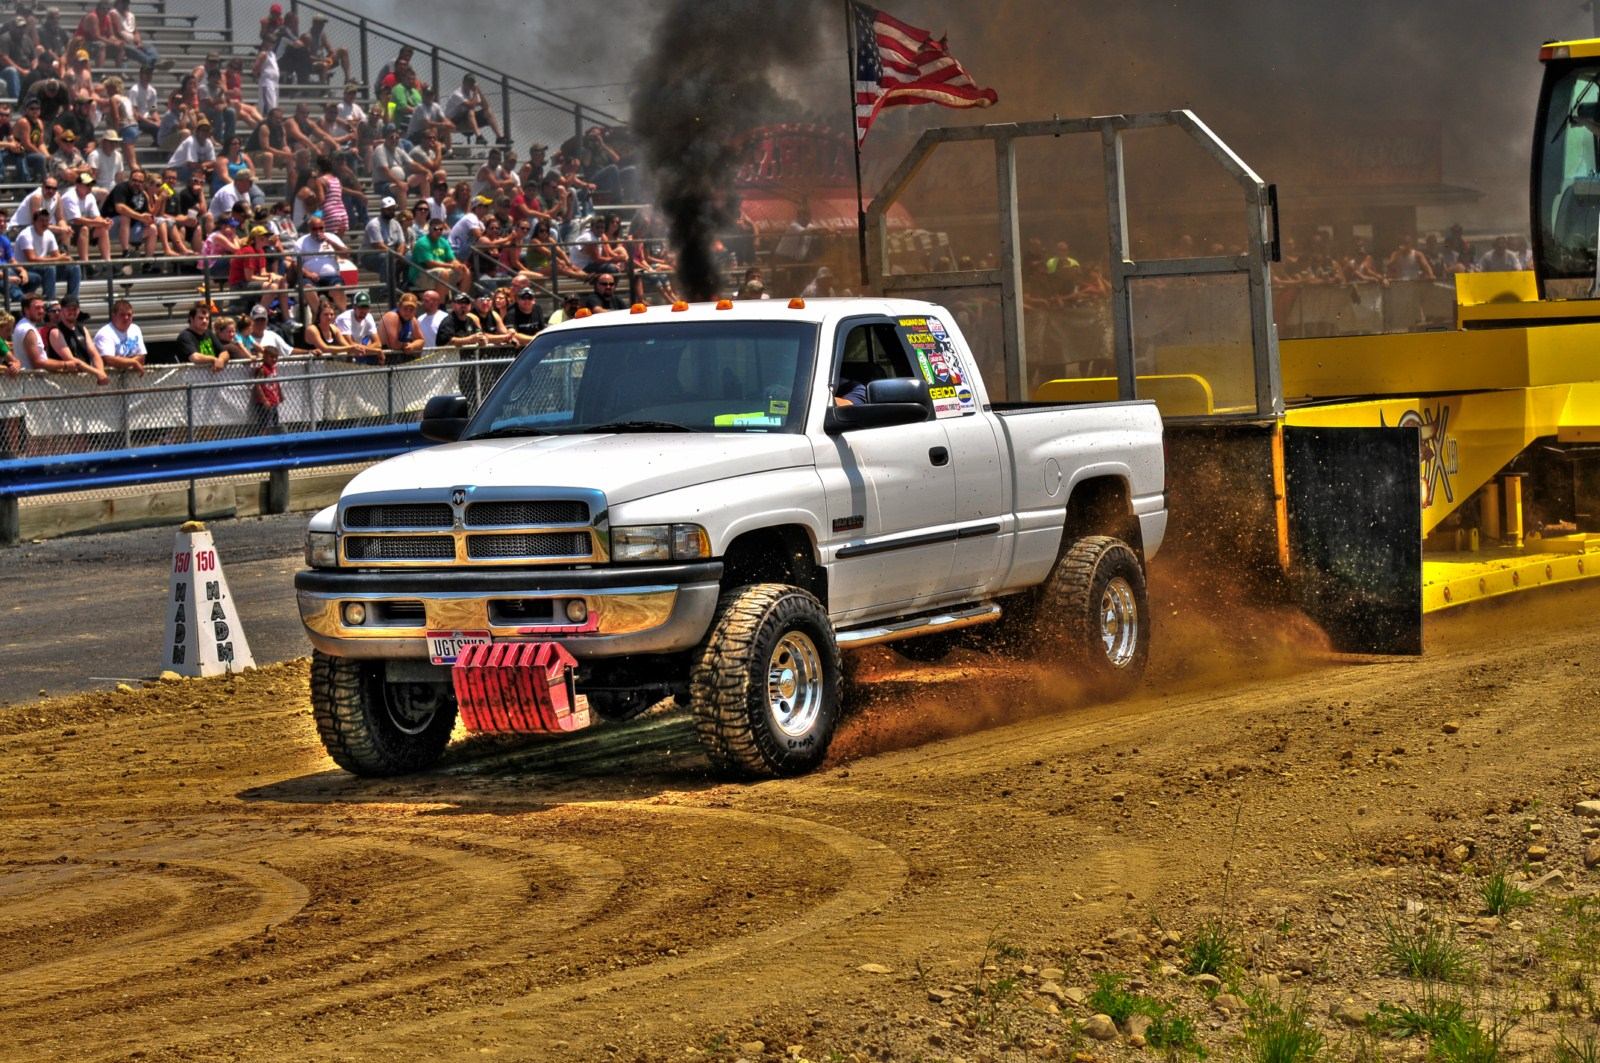 Diesel Motorsports: What Classes are running - sled pulling